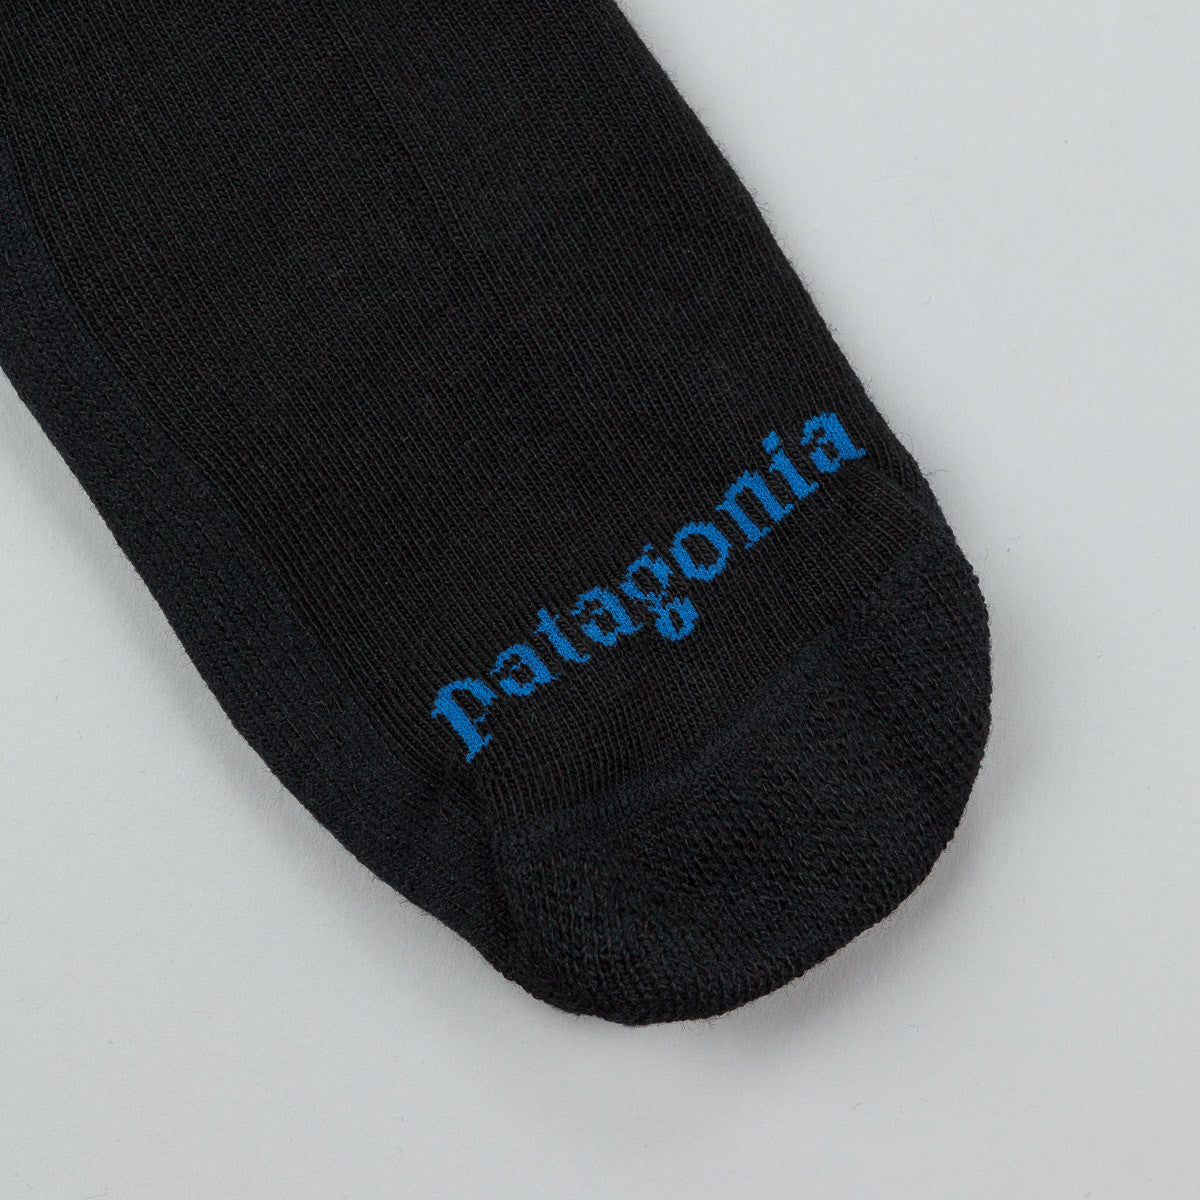 Patagonia Lightweight Merino Crew Socks - Classic Fitz Roy: Andes Blue